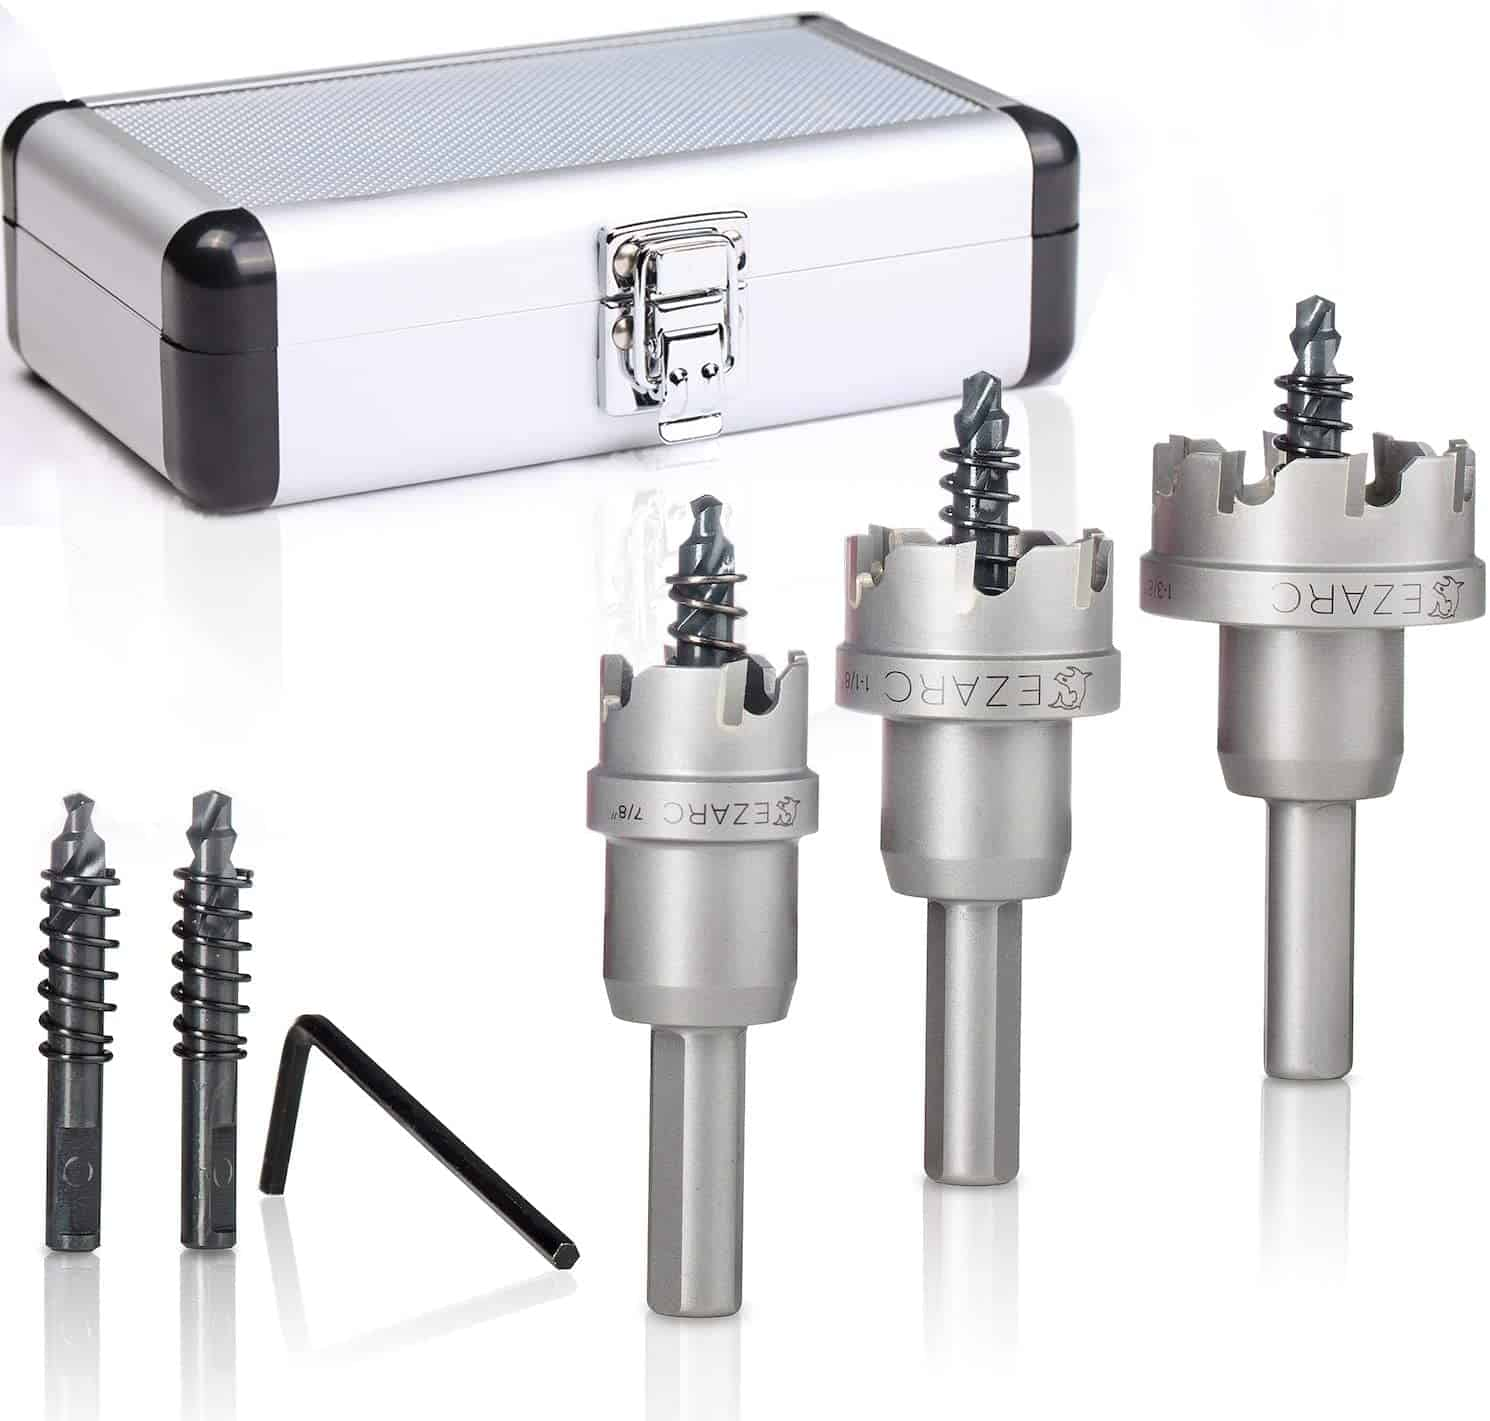 Best value for money: EZARC Carbide Hole Cutter Set for Stainless Steel